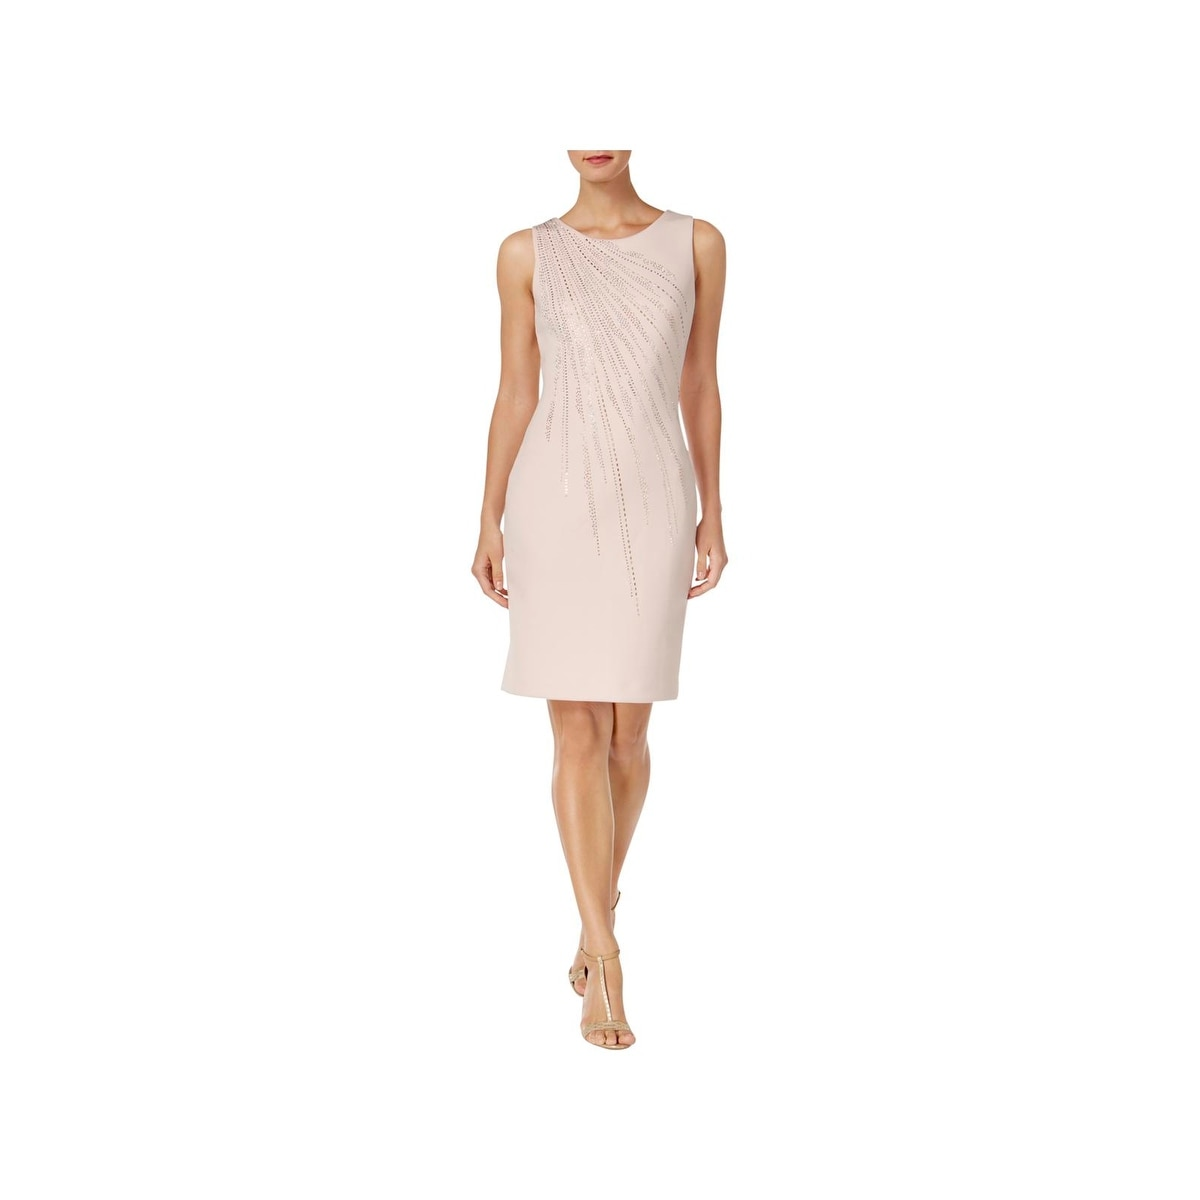 93f7120b62f9b1 Calvin Klein Dresses | Find Great Women's Clothing Deals Shopping at  Overstock